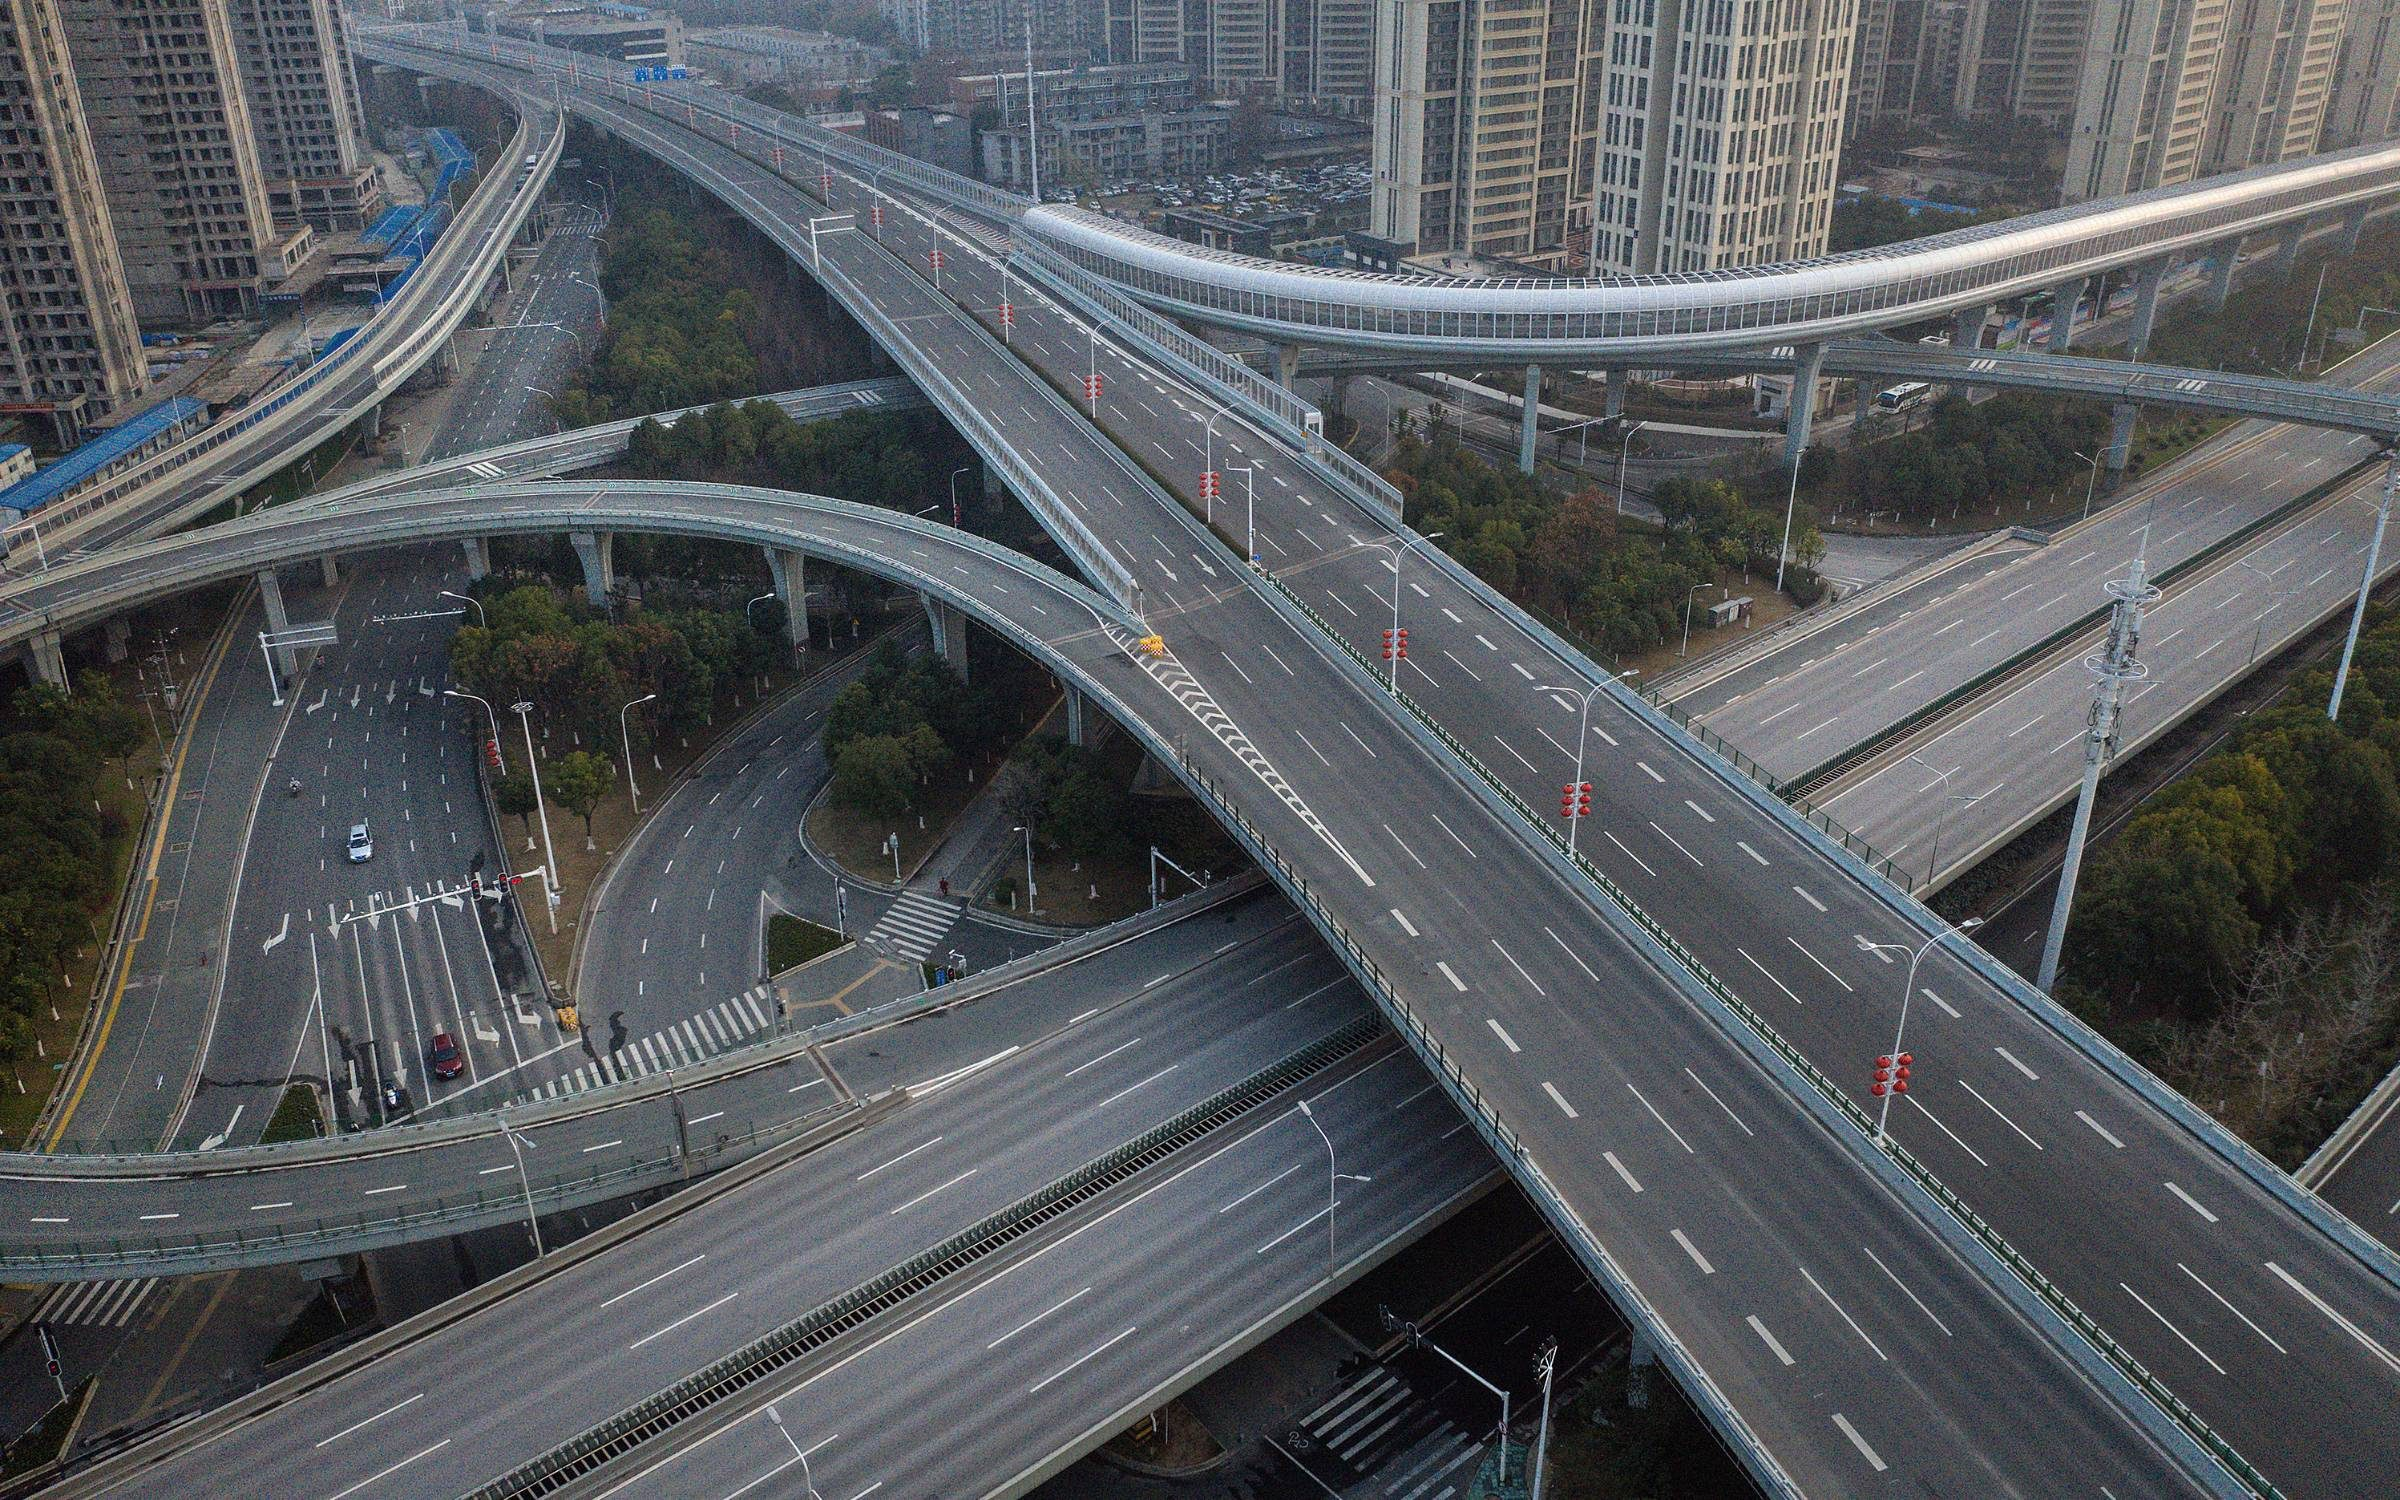 An inner-city highway in Wuhan, China. Credit: Getty Images.